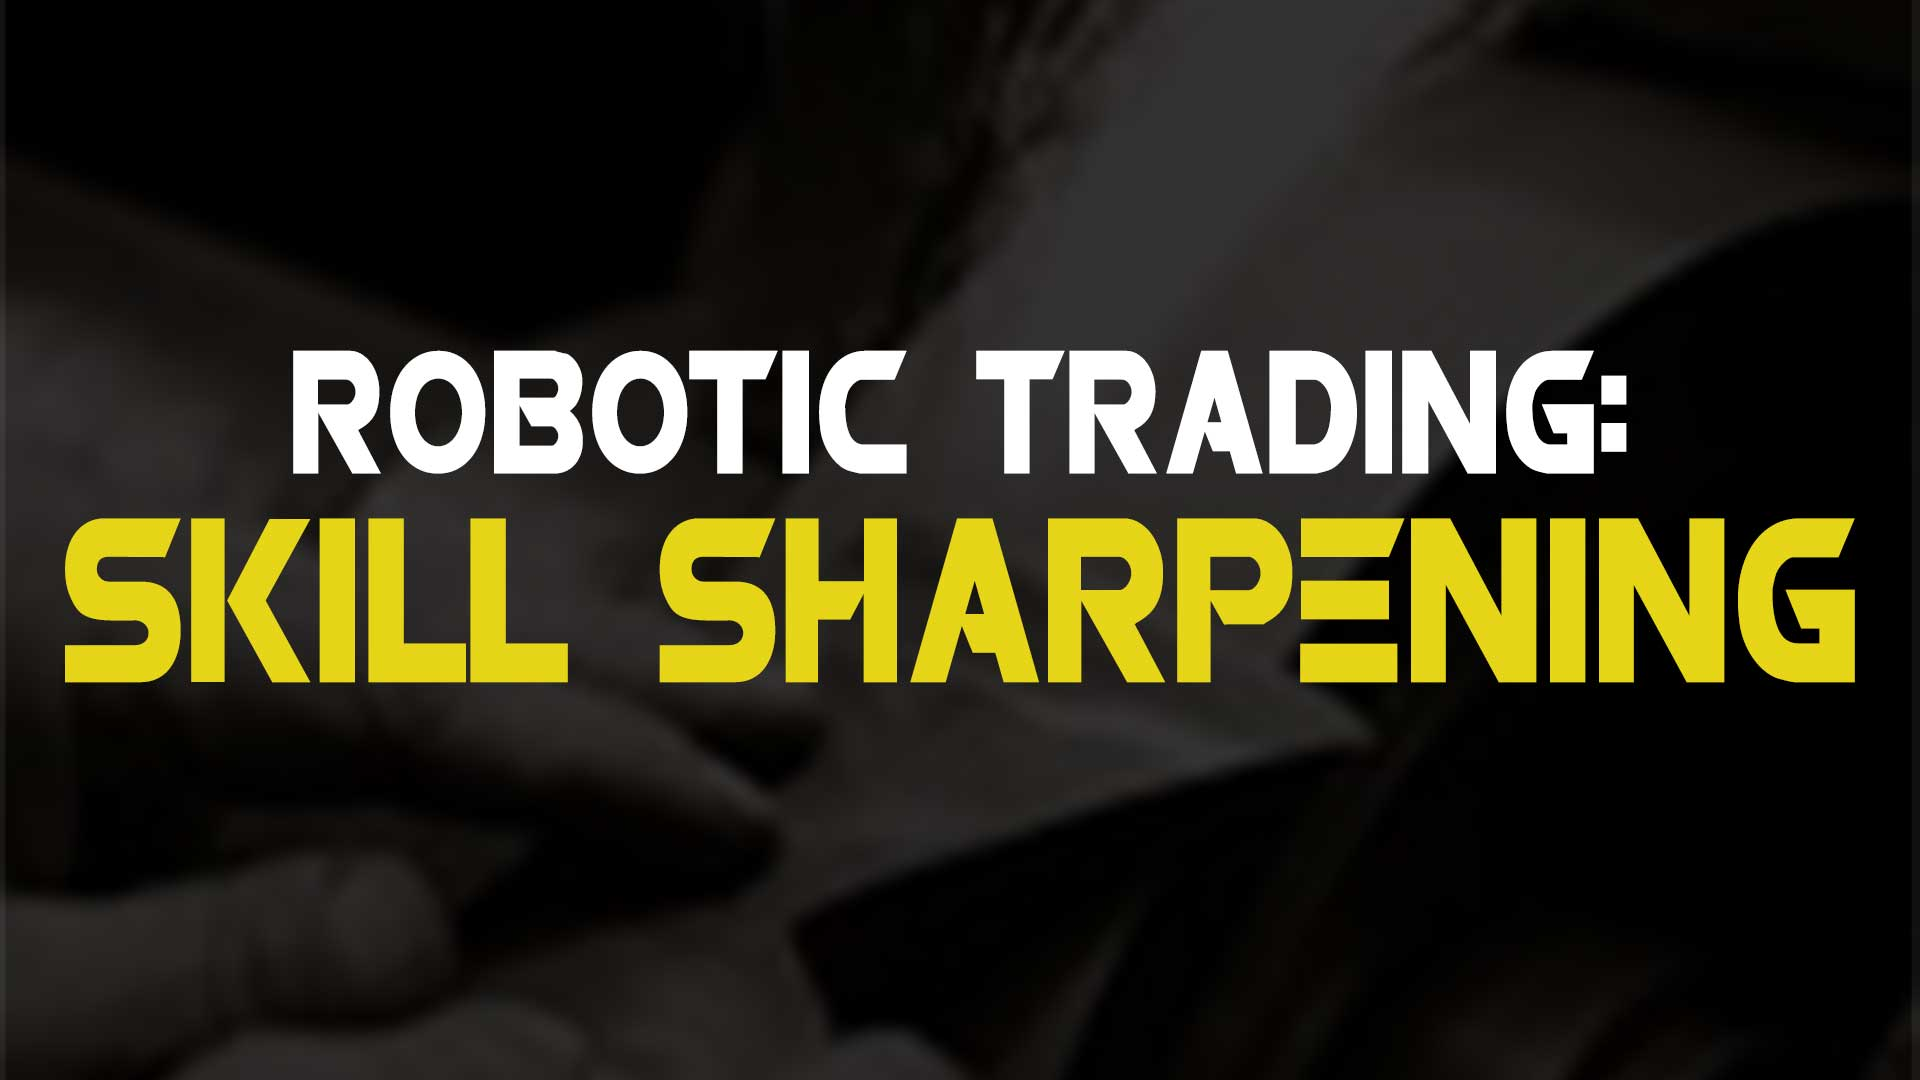 Robotic Trading: Skill Sharpening